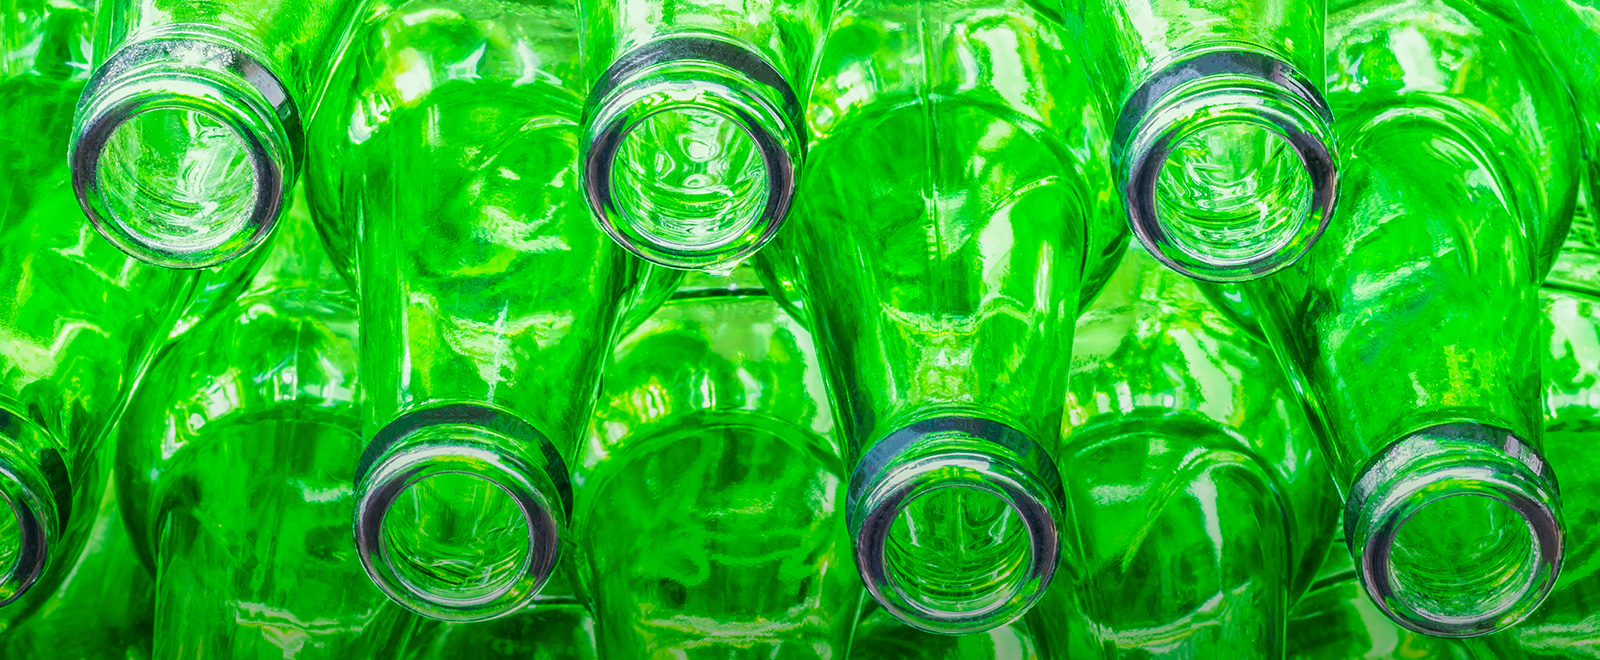 Circular Economy: one of the four founding pillars of A2A's 2030 sustainability policy